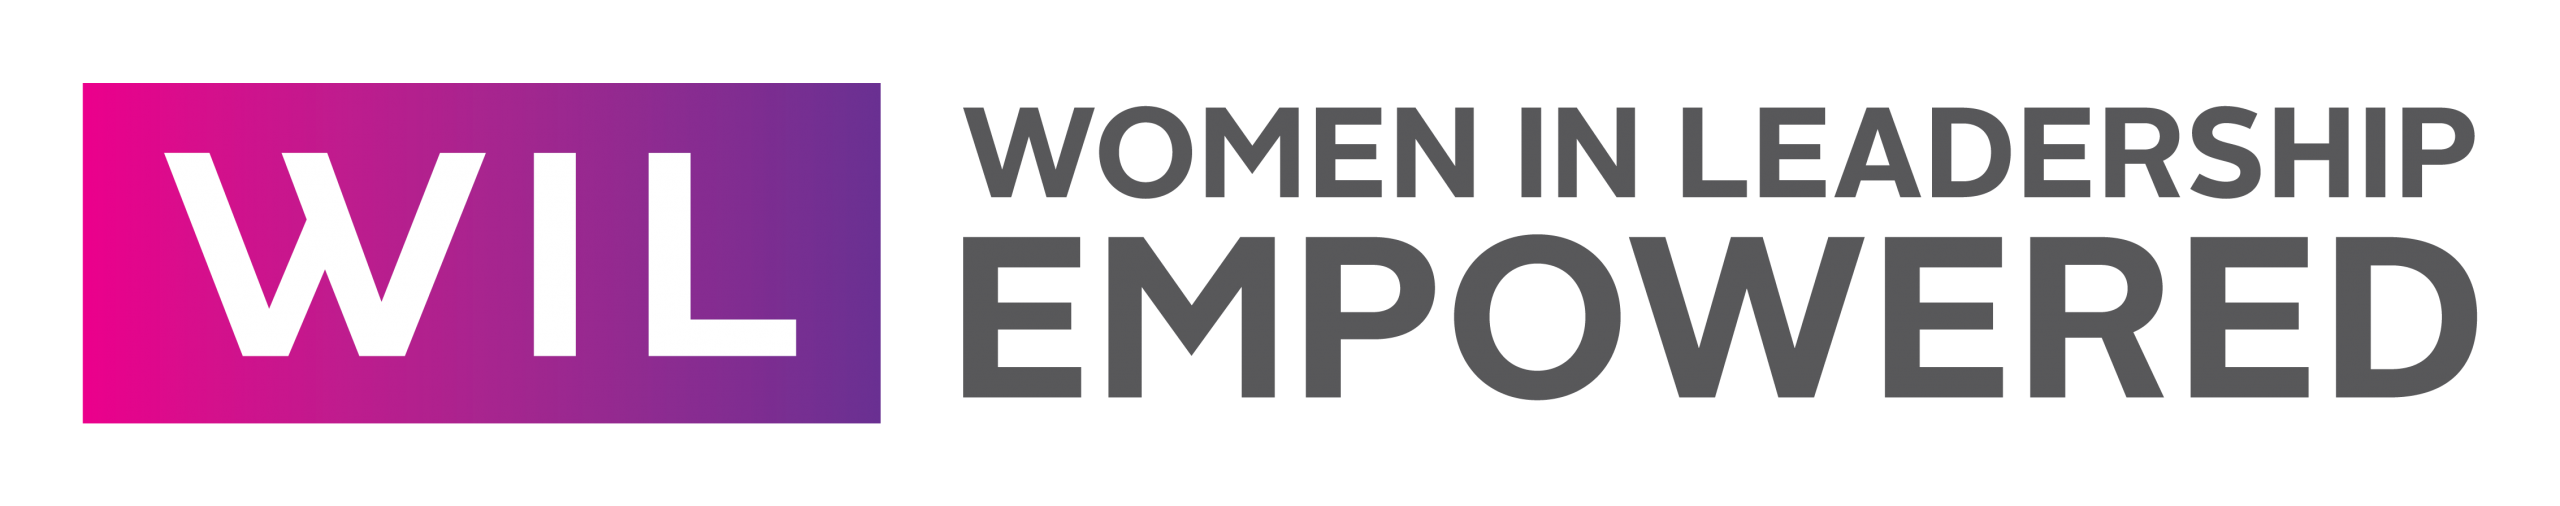 WIL Empowered